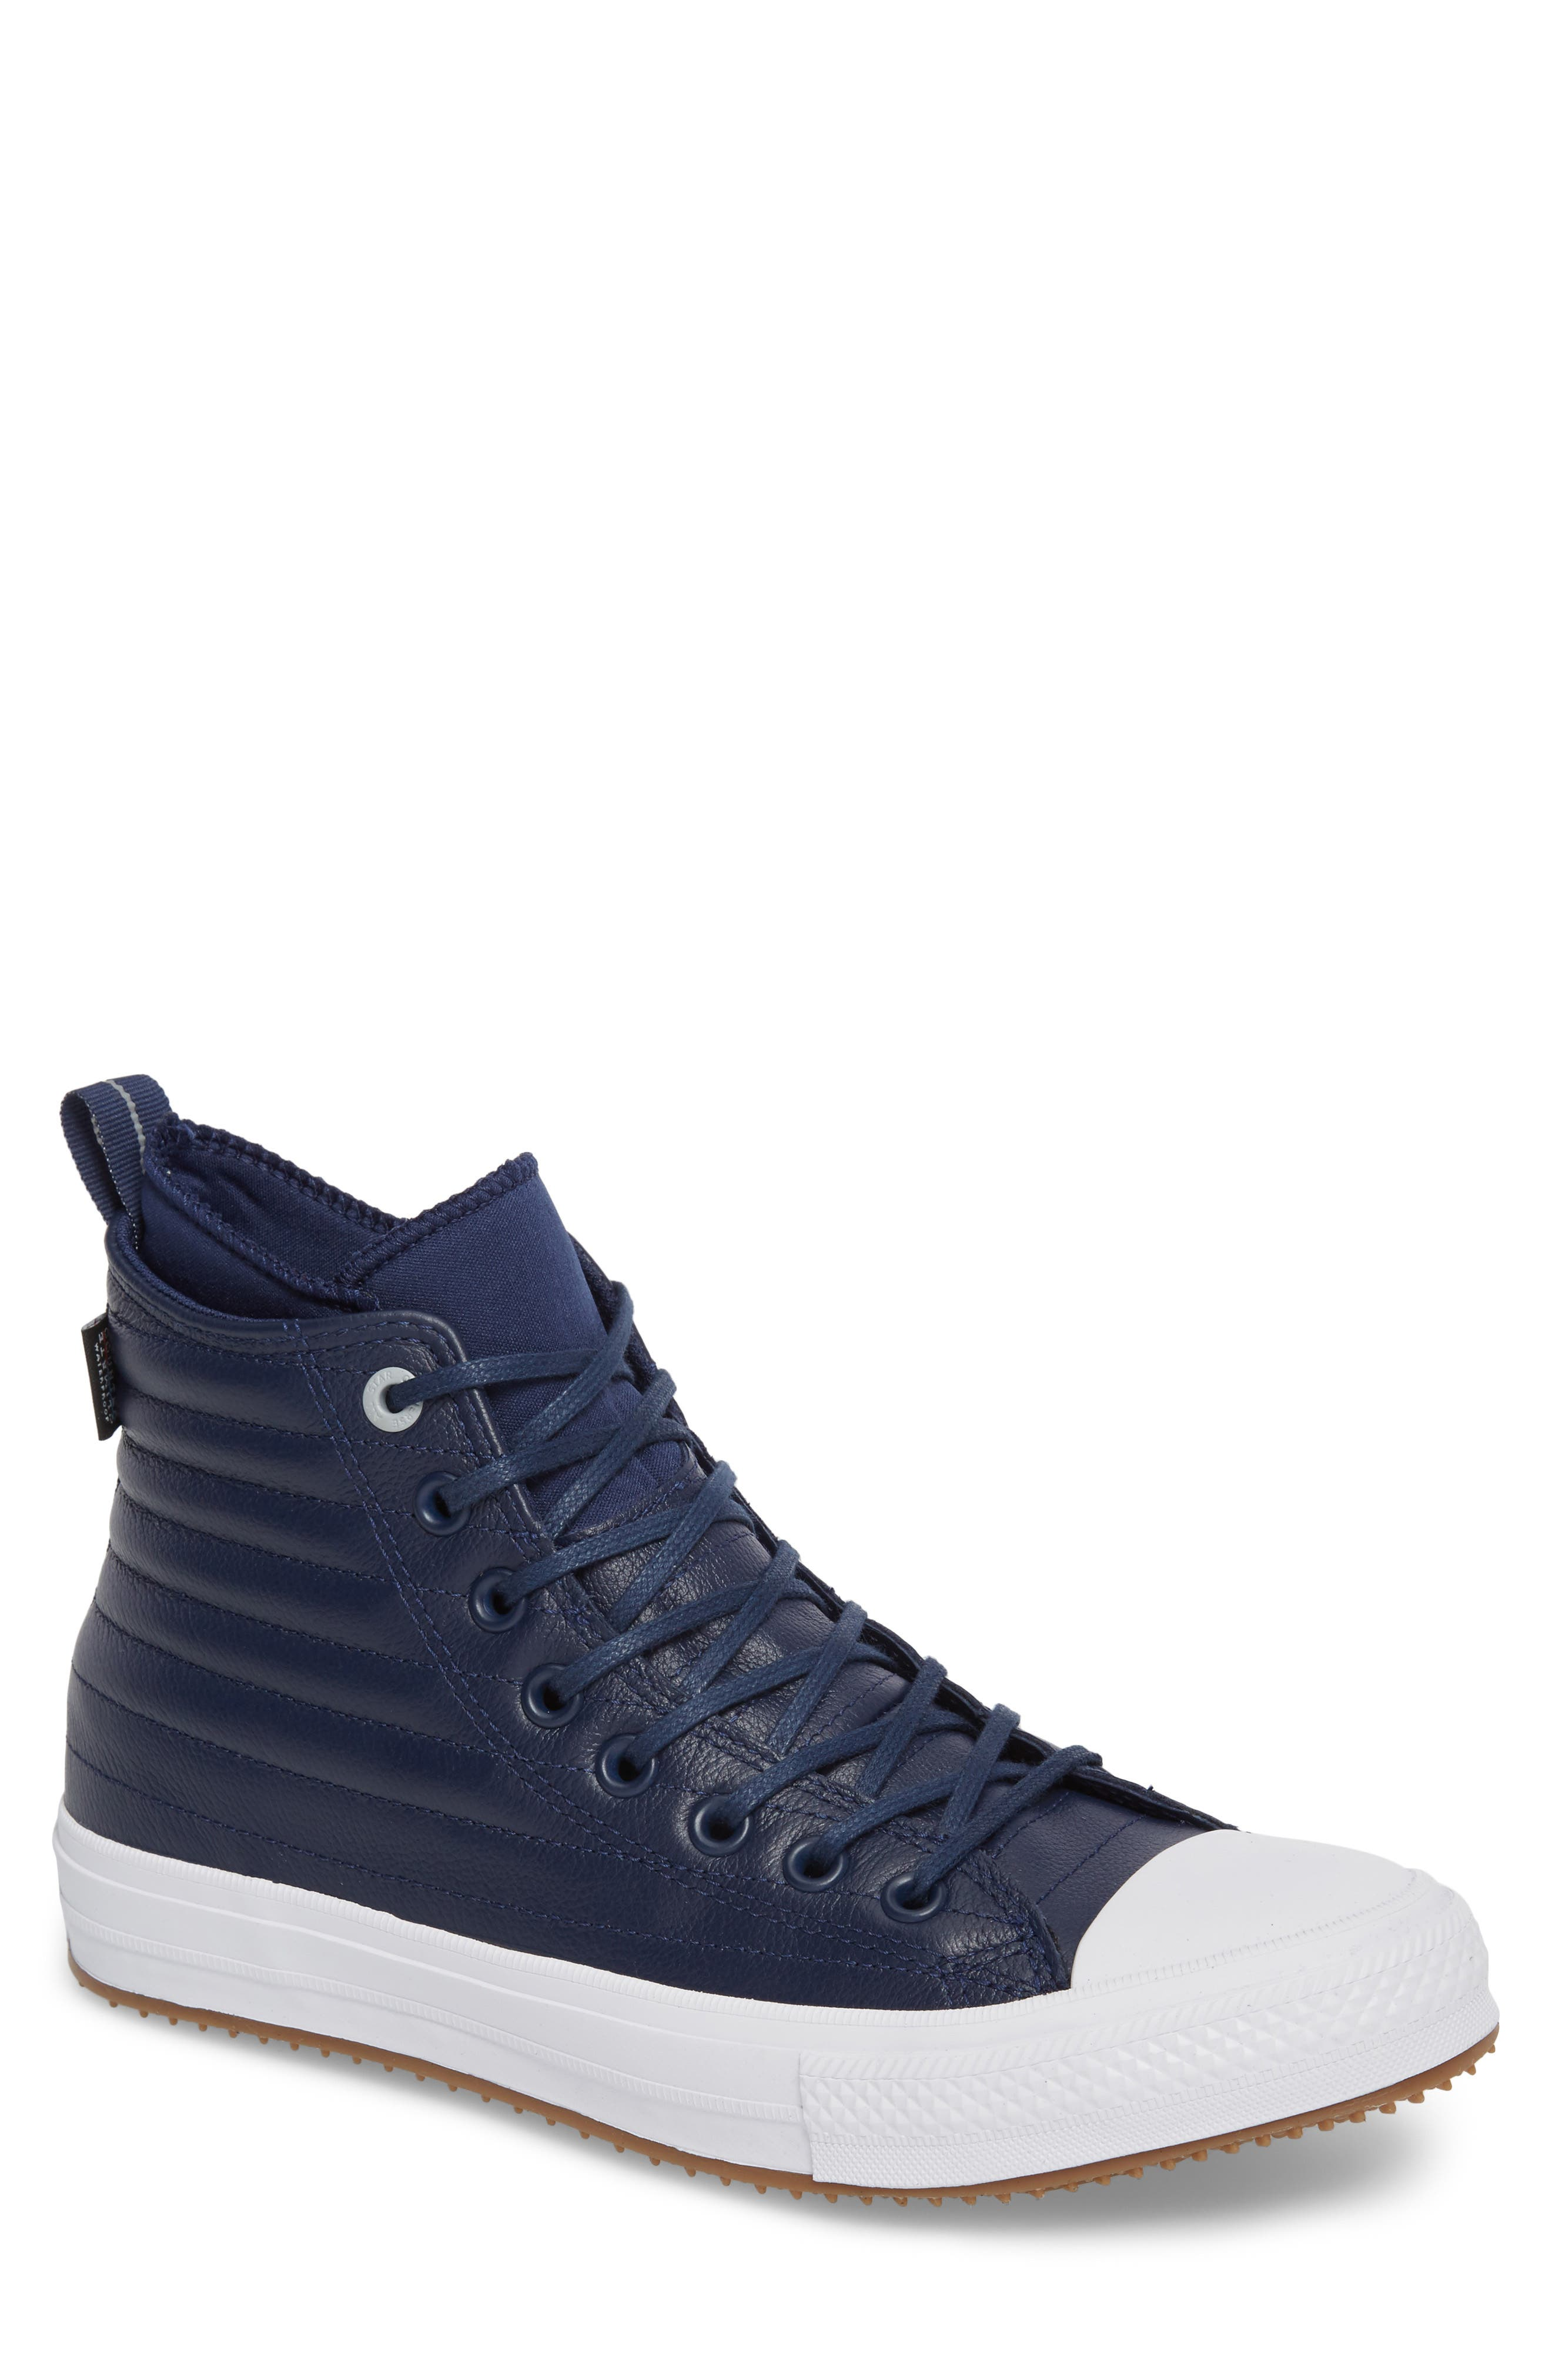 Chuck Taylor<sup>®</sup> All Star<sup>®</sup> Waterproof Quilted Sneaker,                             Main thumbnail 2, color,